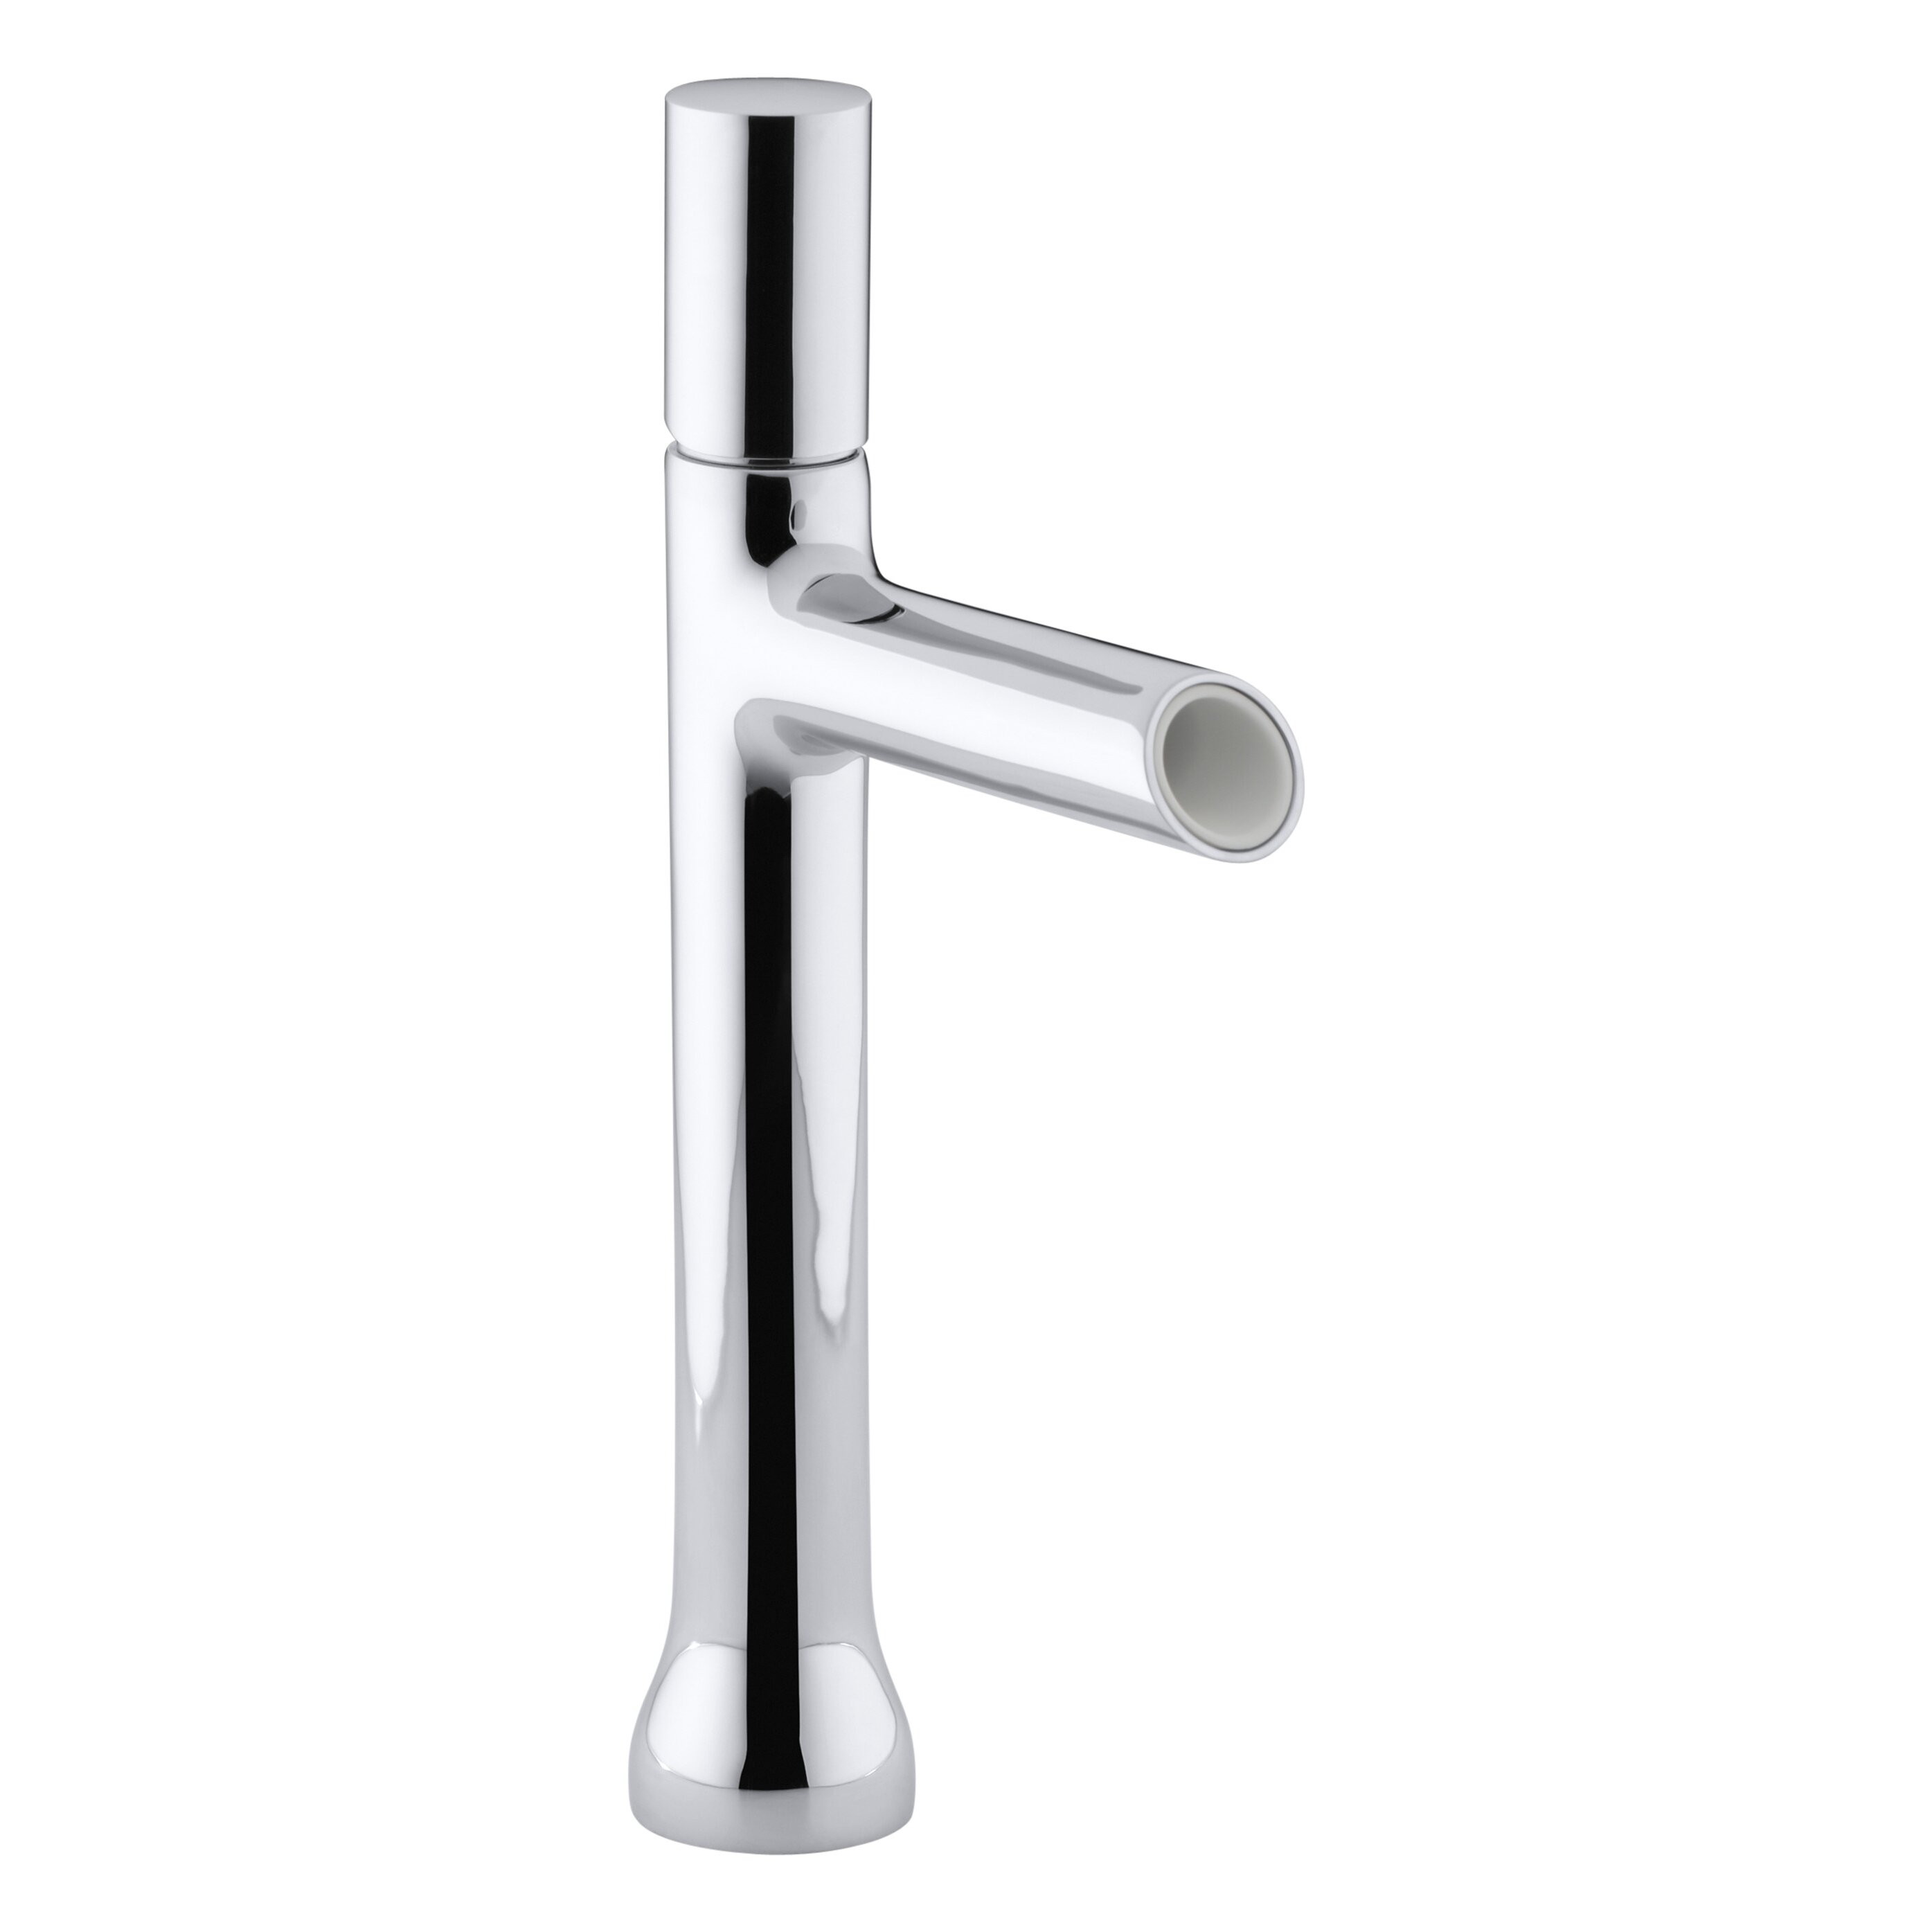 Kohler Faucet Reviews : Kohler Toobi Tall Single-Hole Bathroom Sink Faucet & Reviews Wayfair